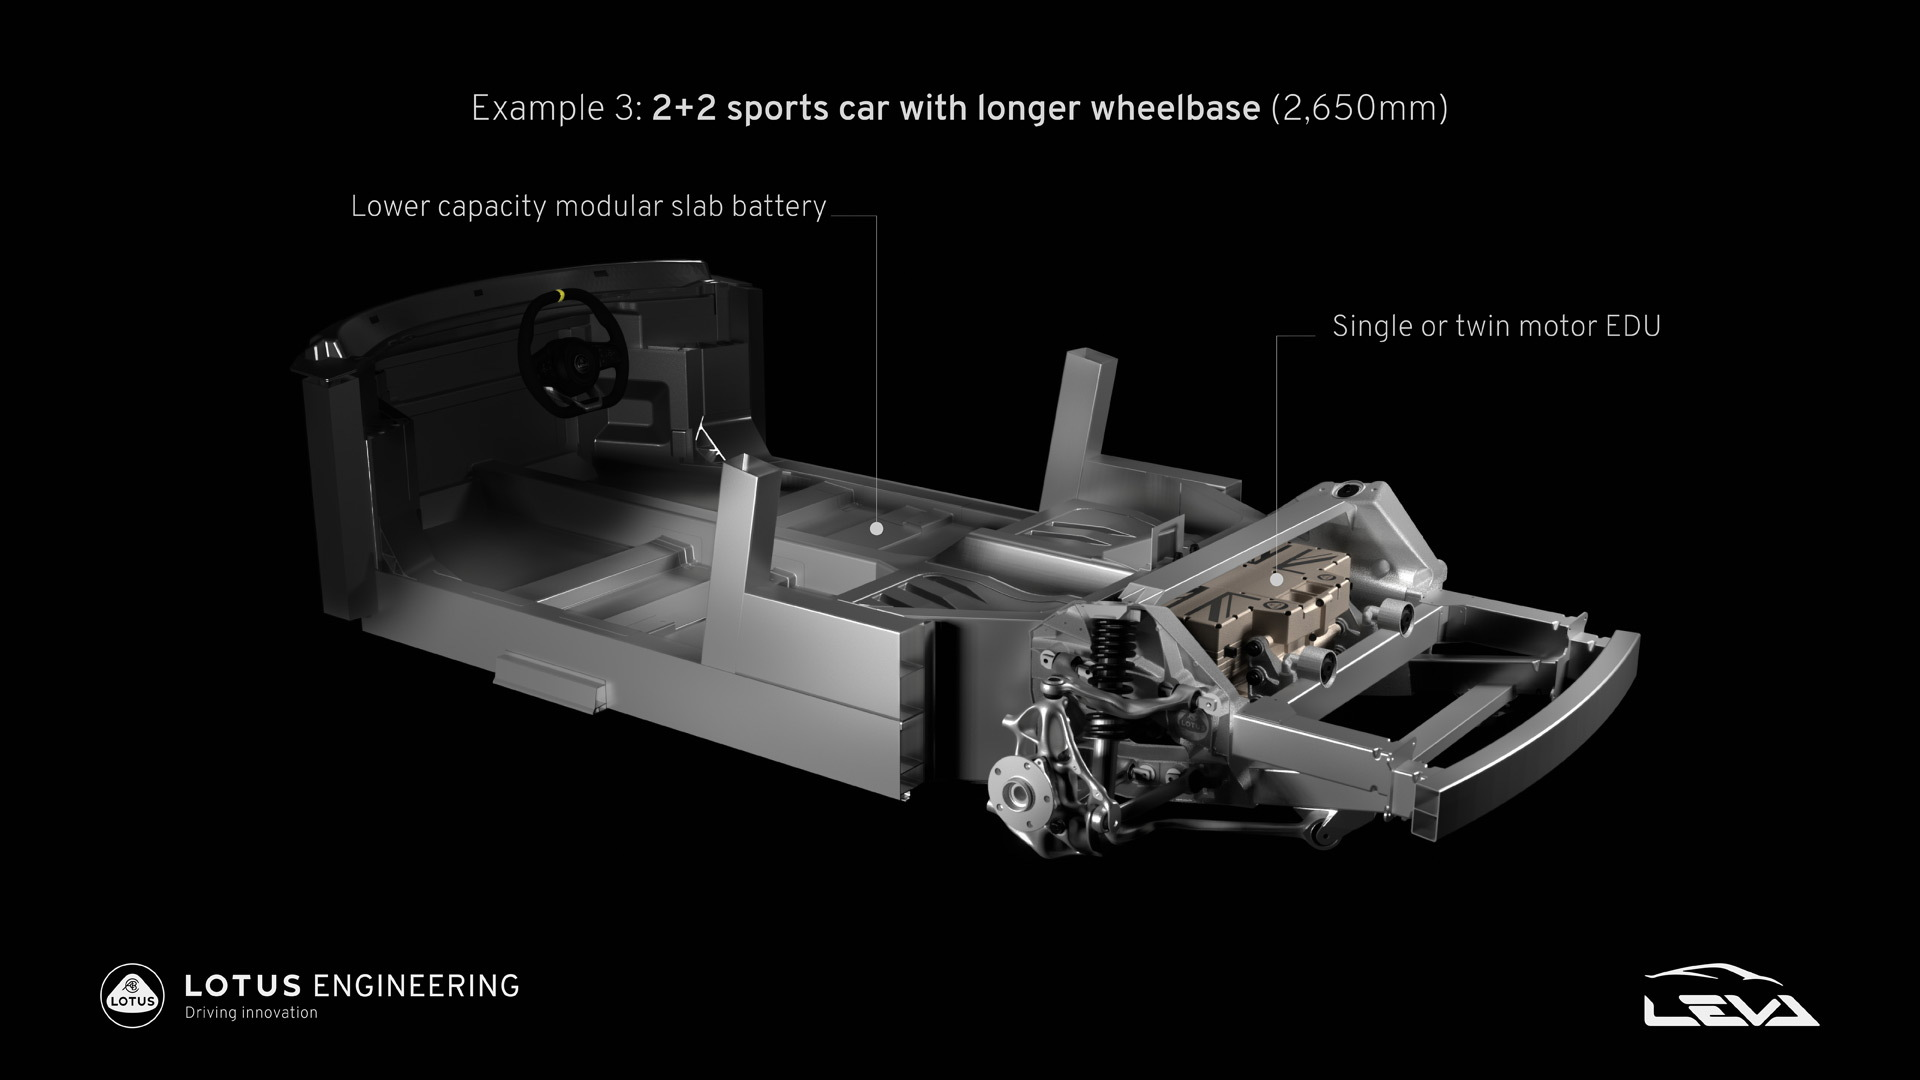 Lotus E-Sports platform (Project LEVA) for 2+2 electric sports cars